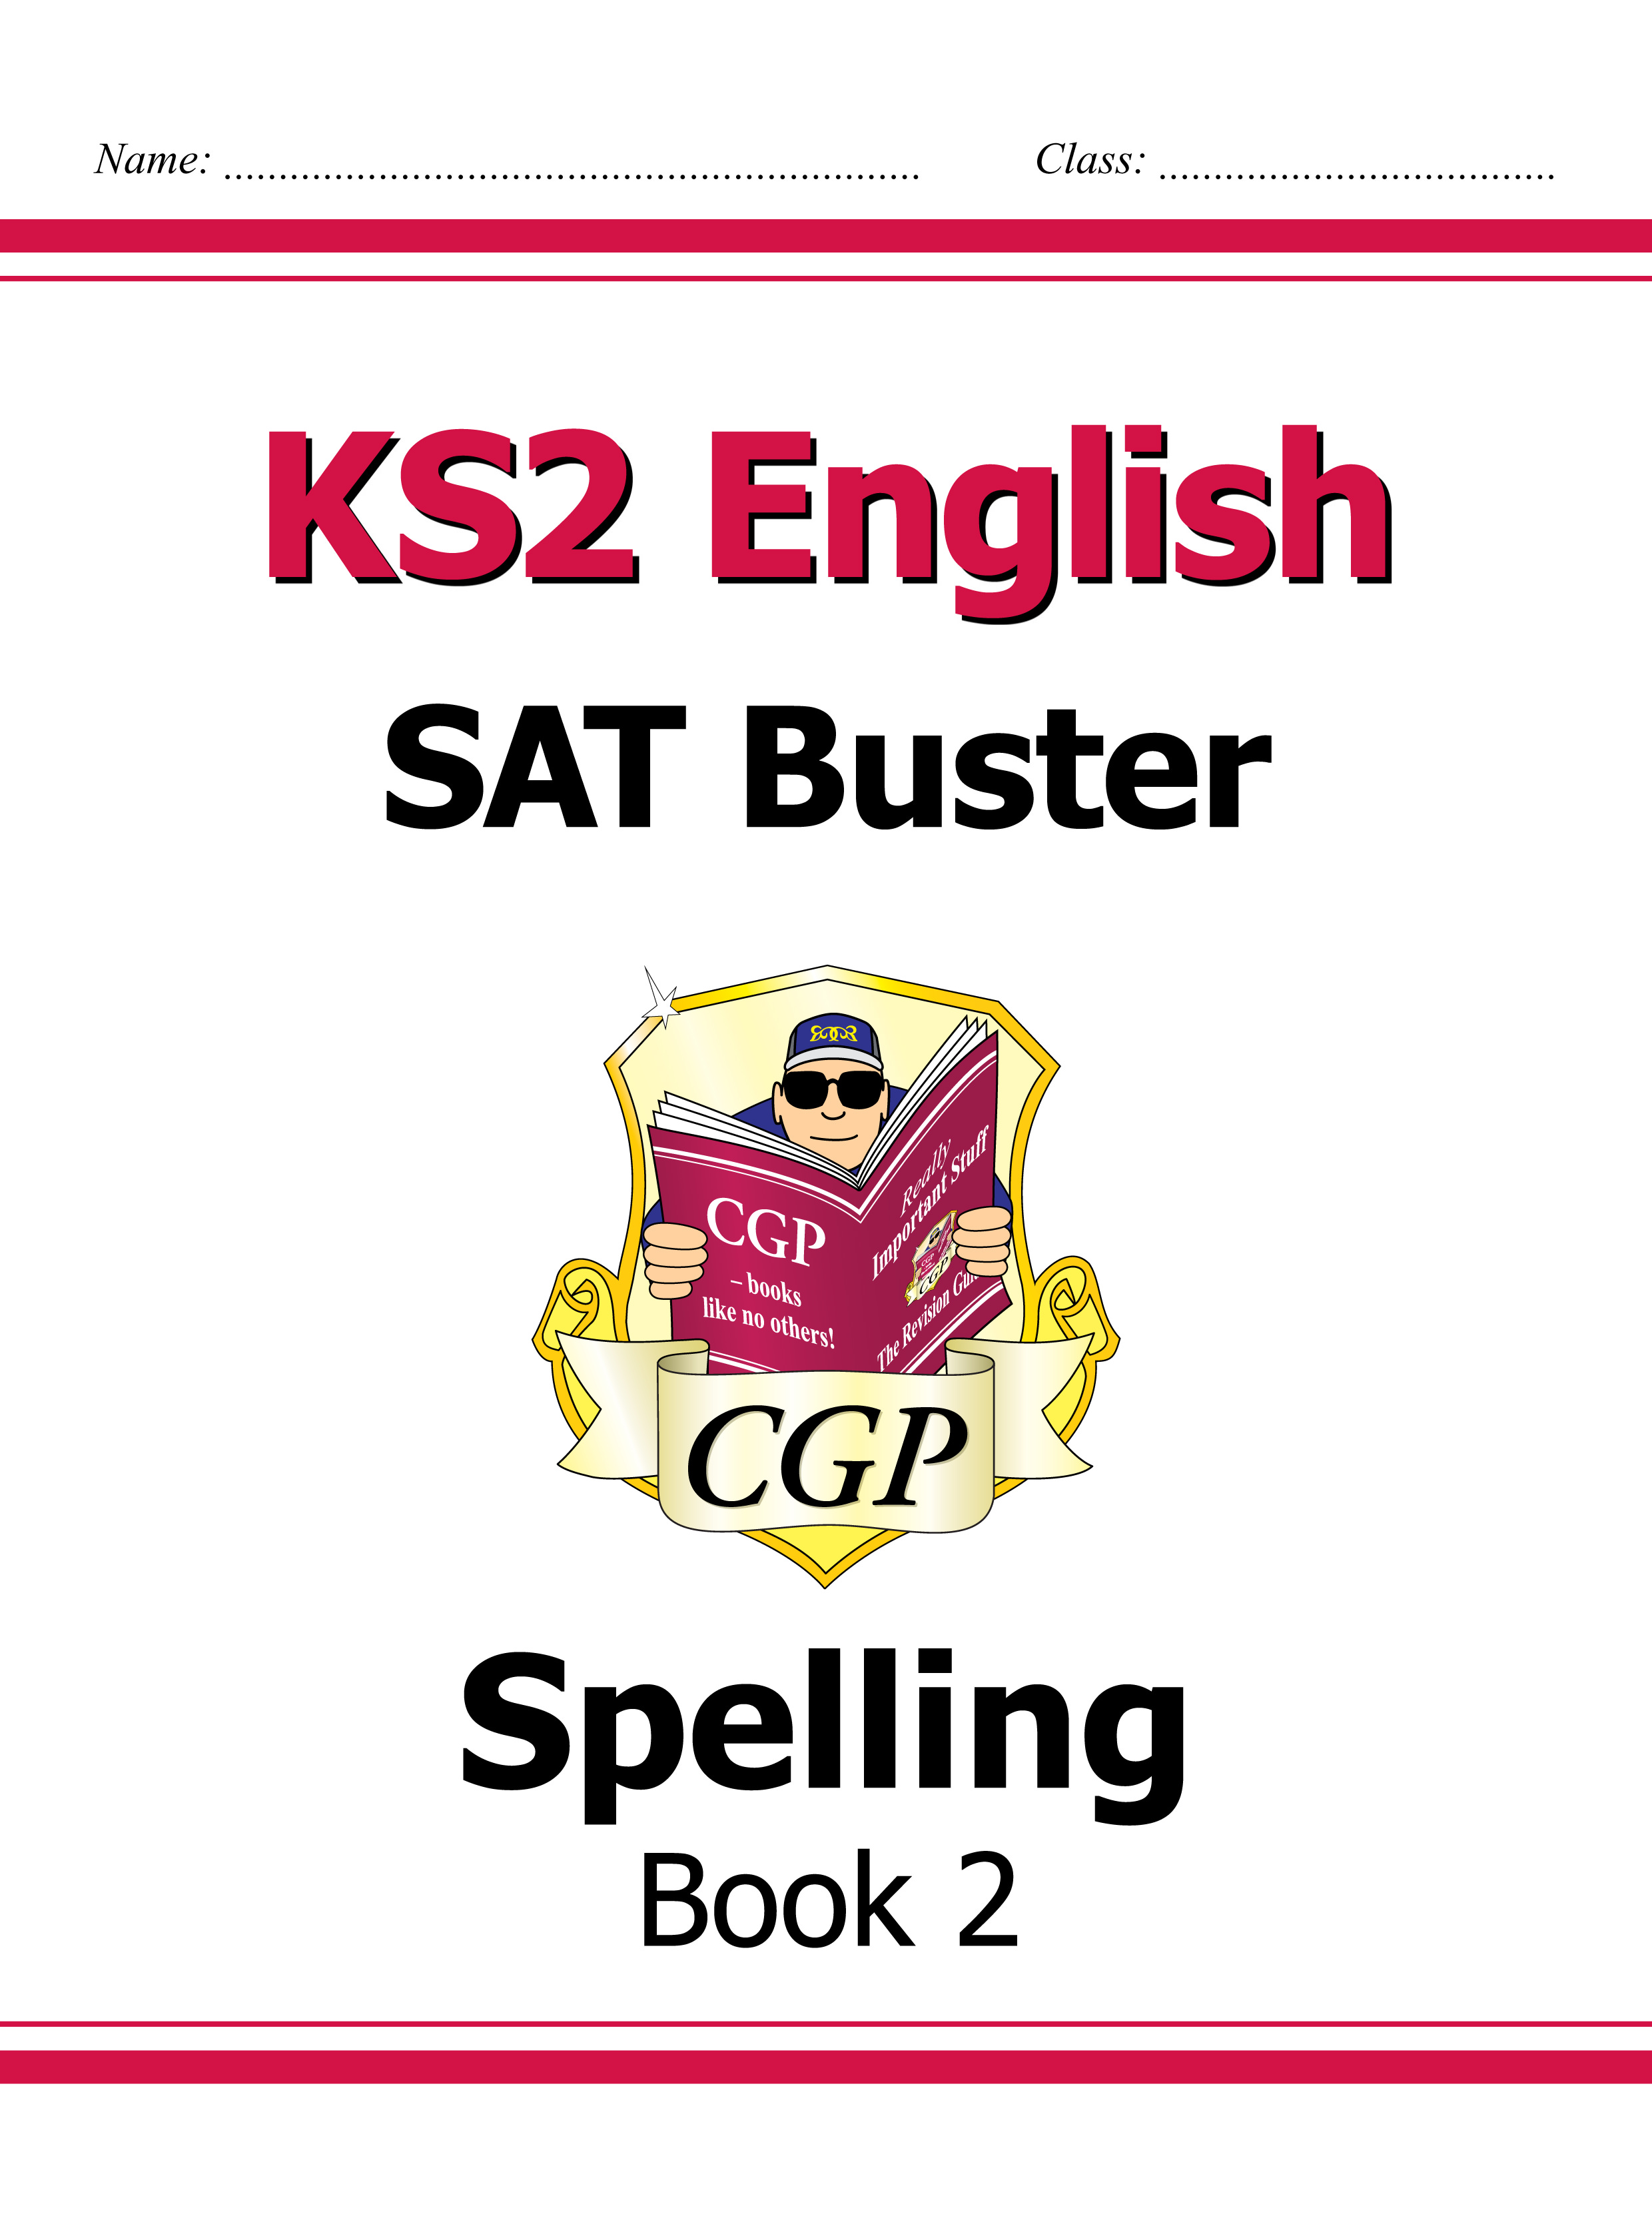 E6S222DK - KS2 English SAT Buster - Spelling Book 2 (for tests in 2018 and beyond)